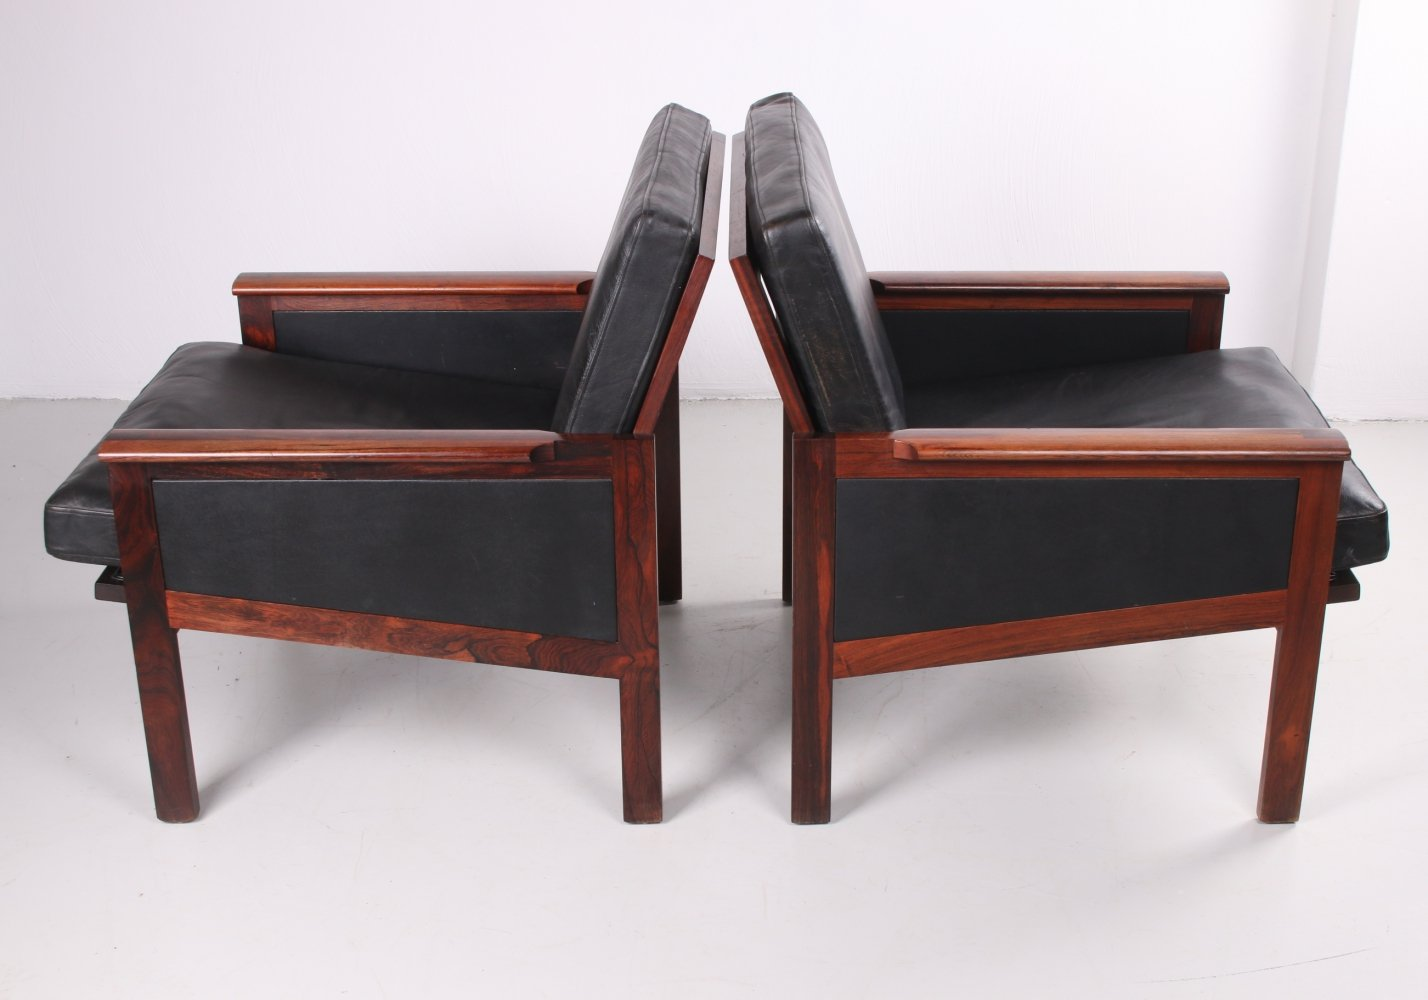 Pair of black leather Capella arm chairs by Illum Wikkelsø, 1958